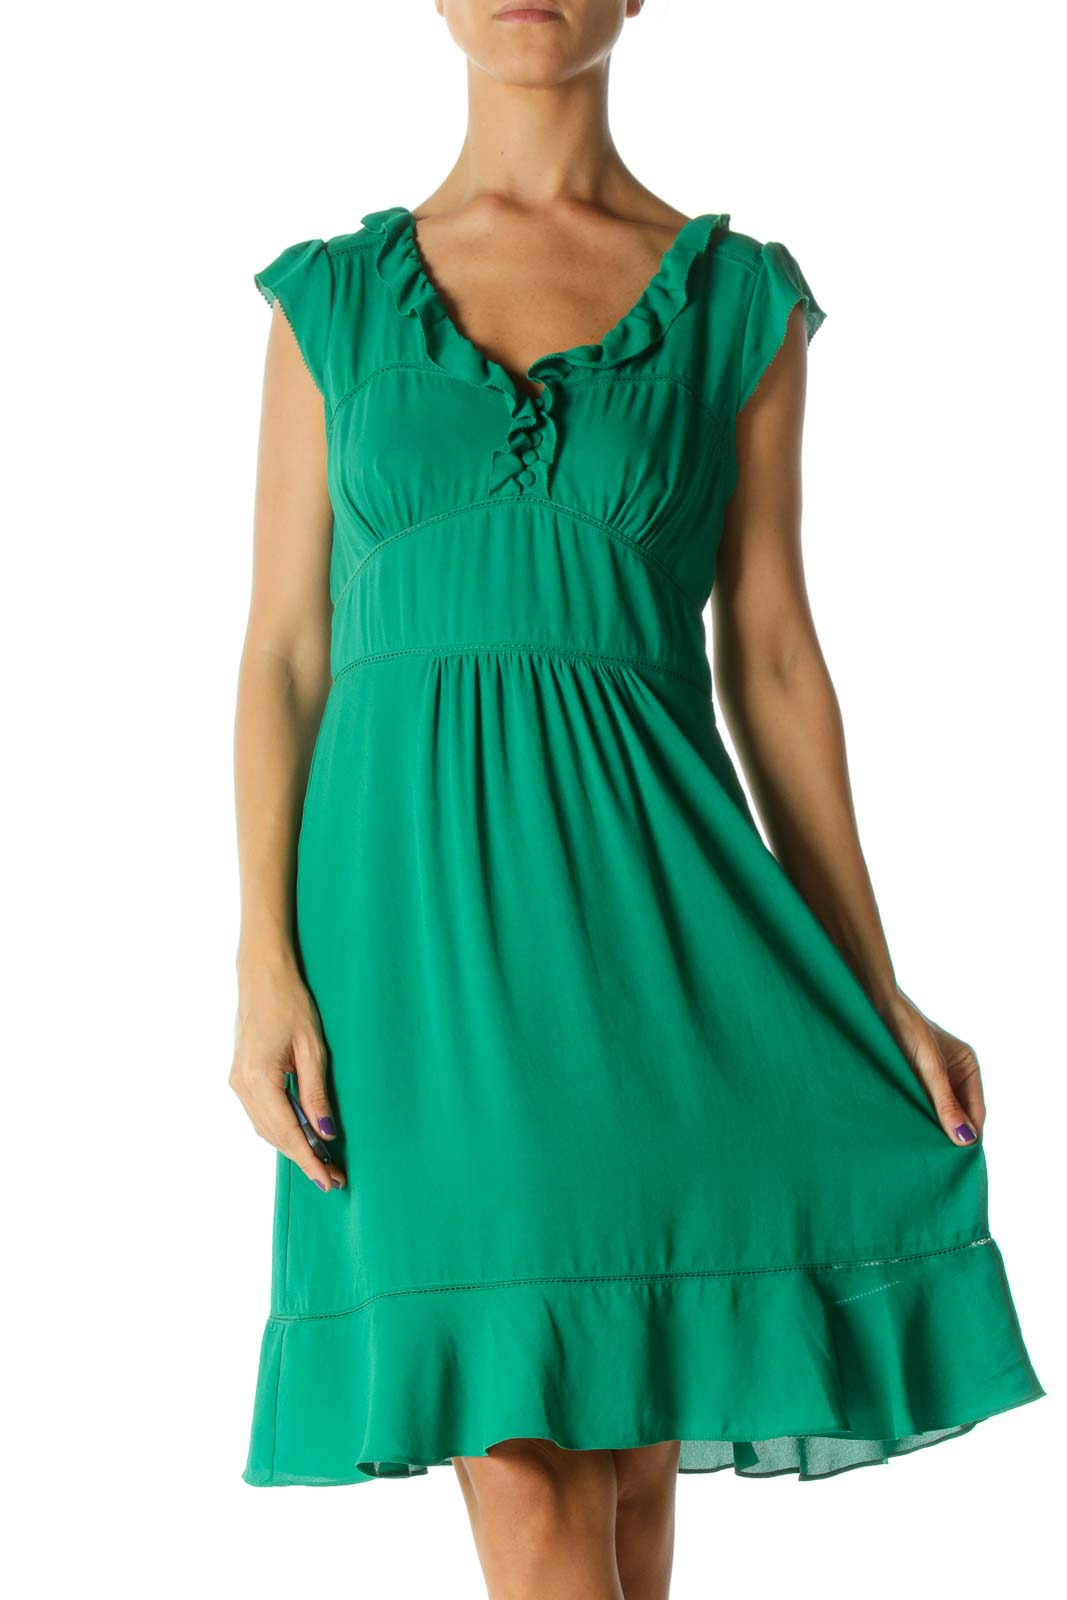 Green Ruffle Detail Lace Trim Fabric Buttons Day Dress